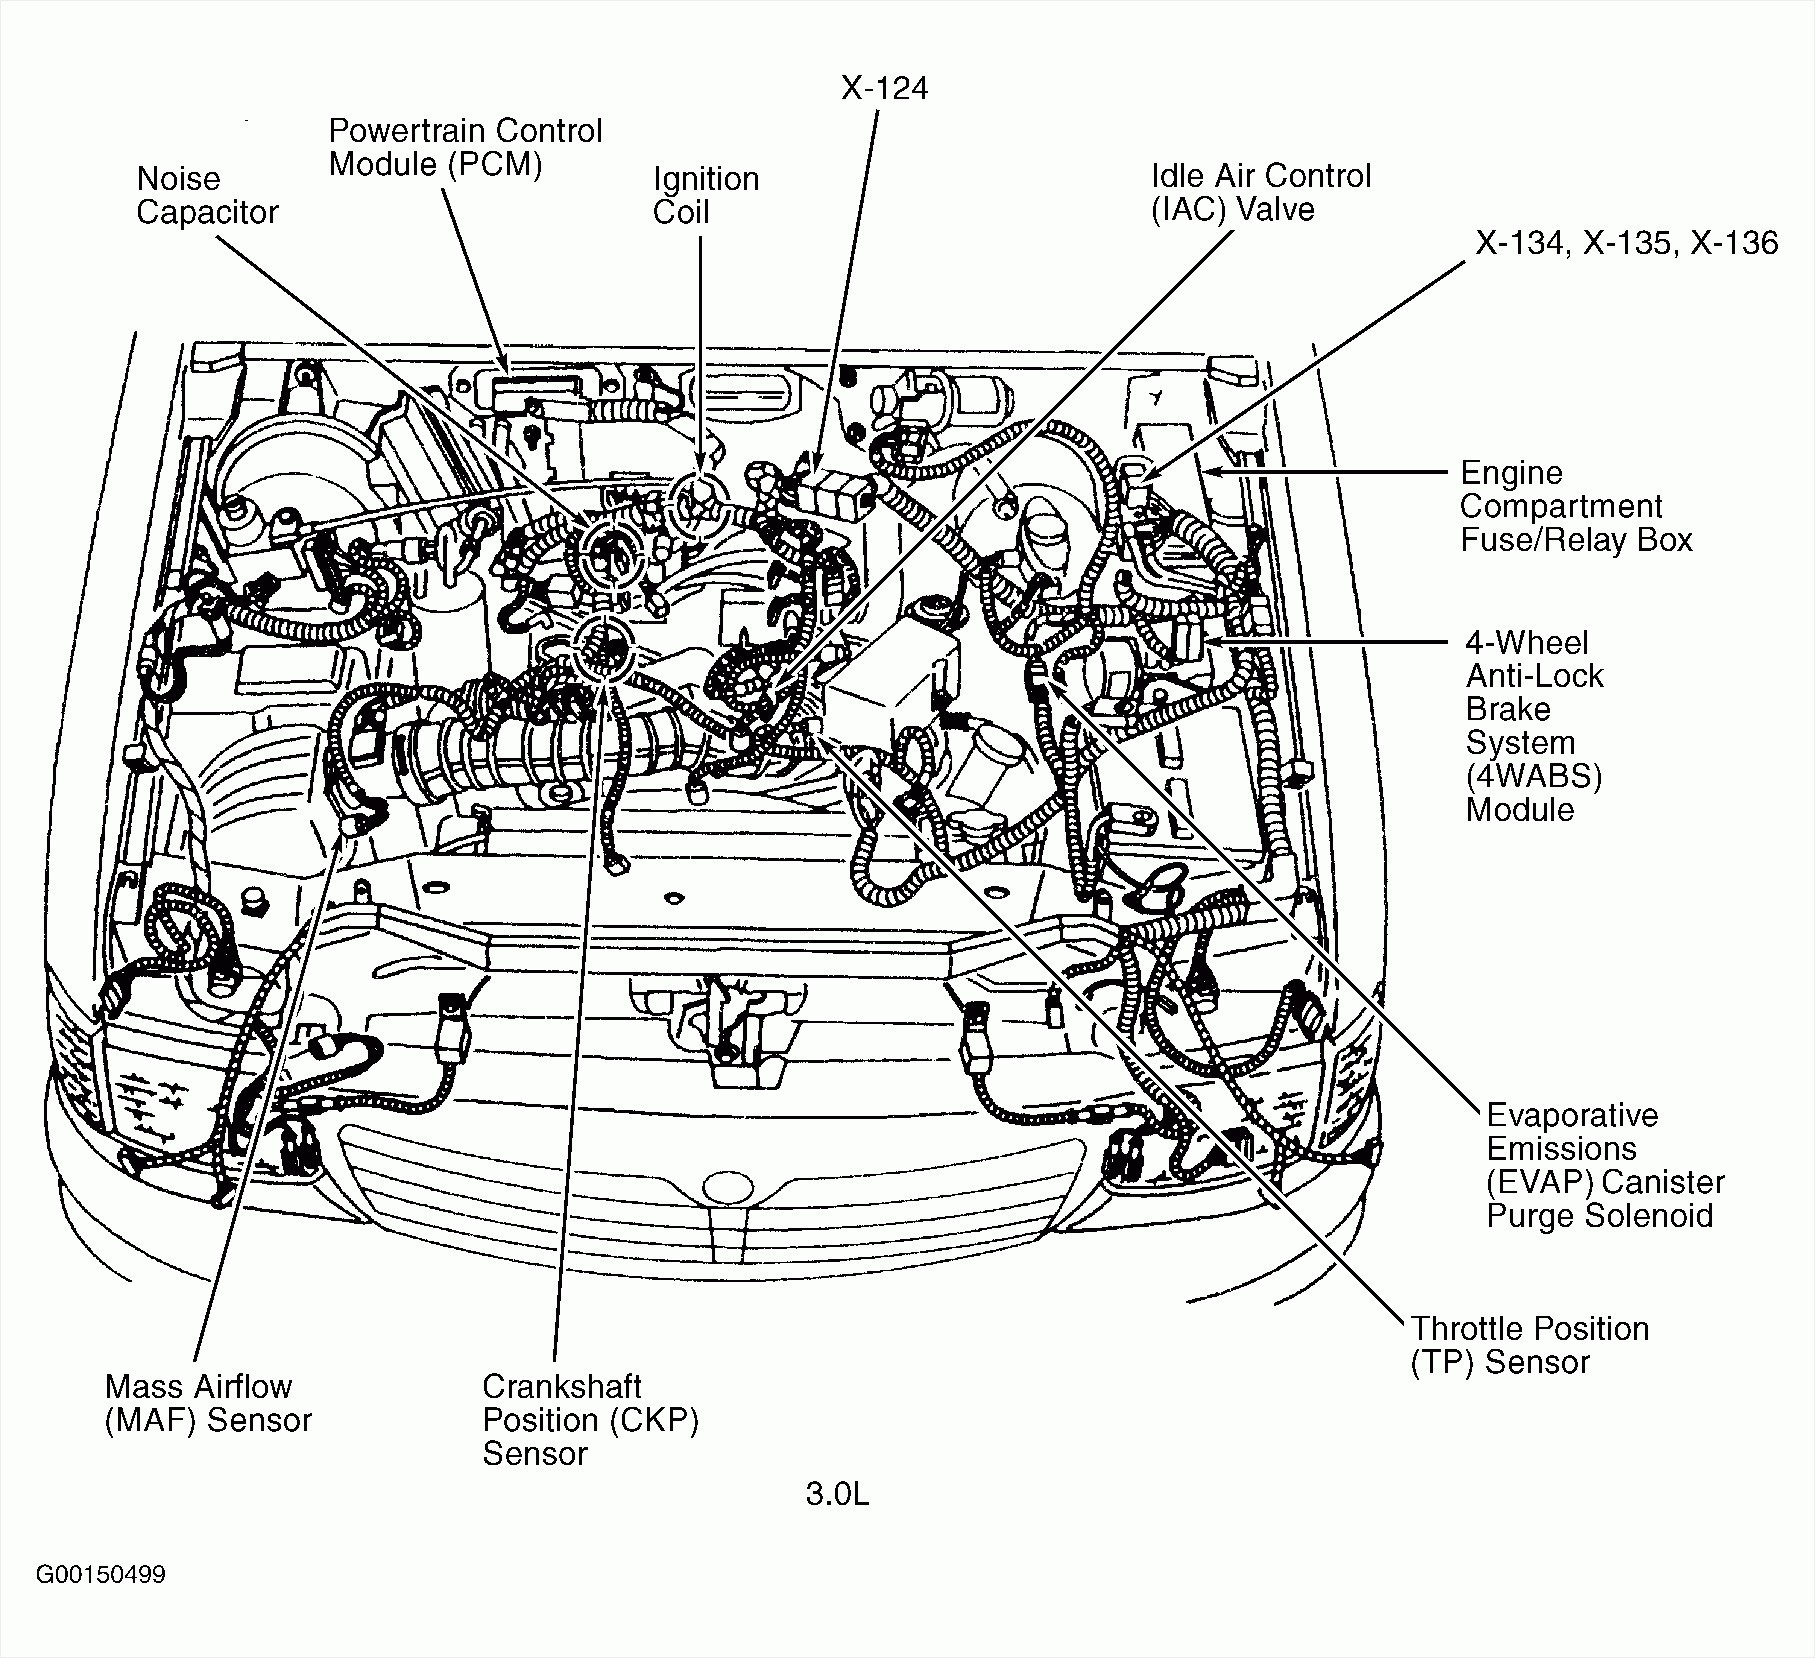 hight resolution of diagram also ford explorer cooling system diagram on 2006 ford focus ford ranger cooling system diagram also 2001 ford windstar fuel